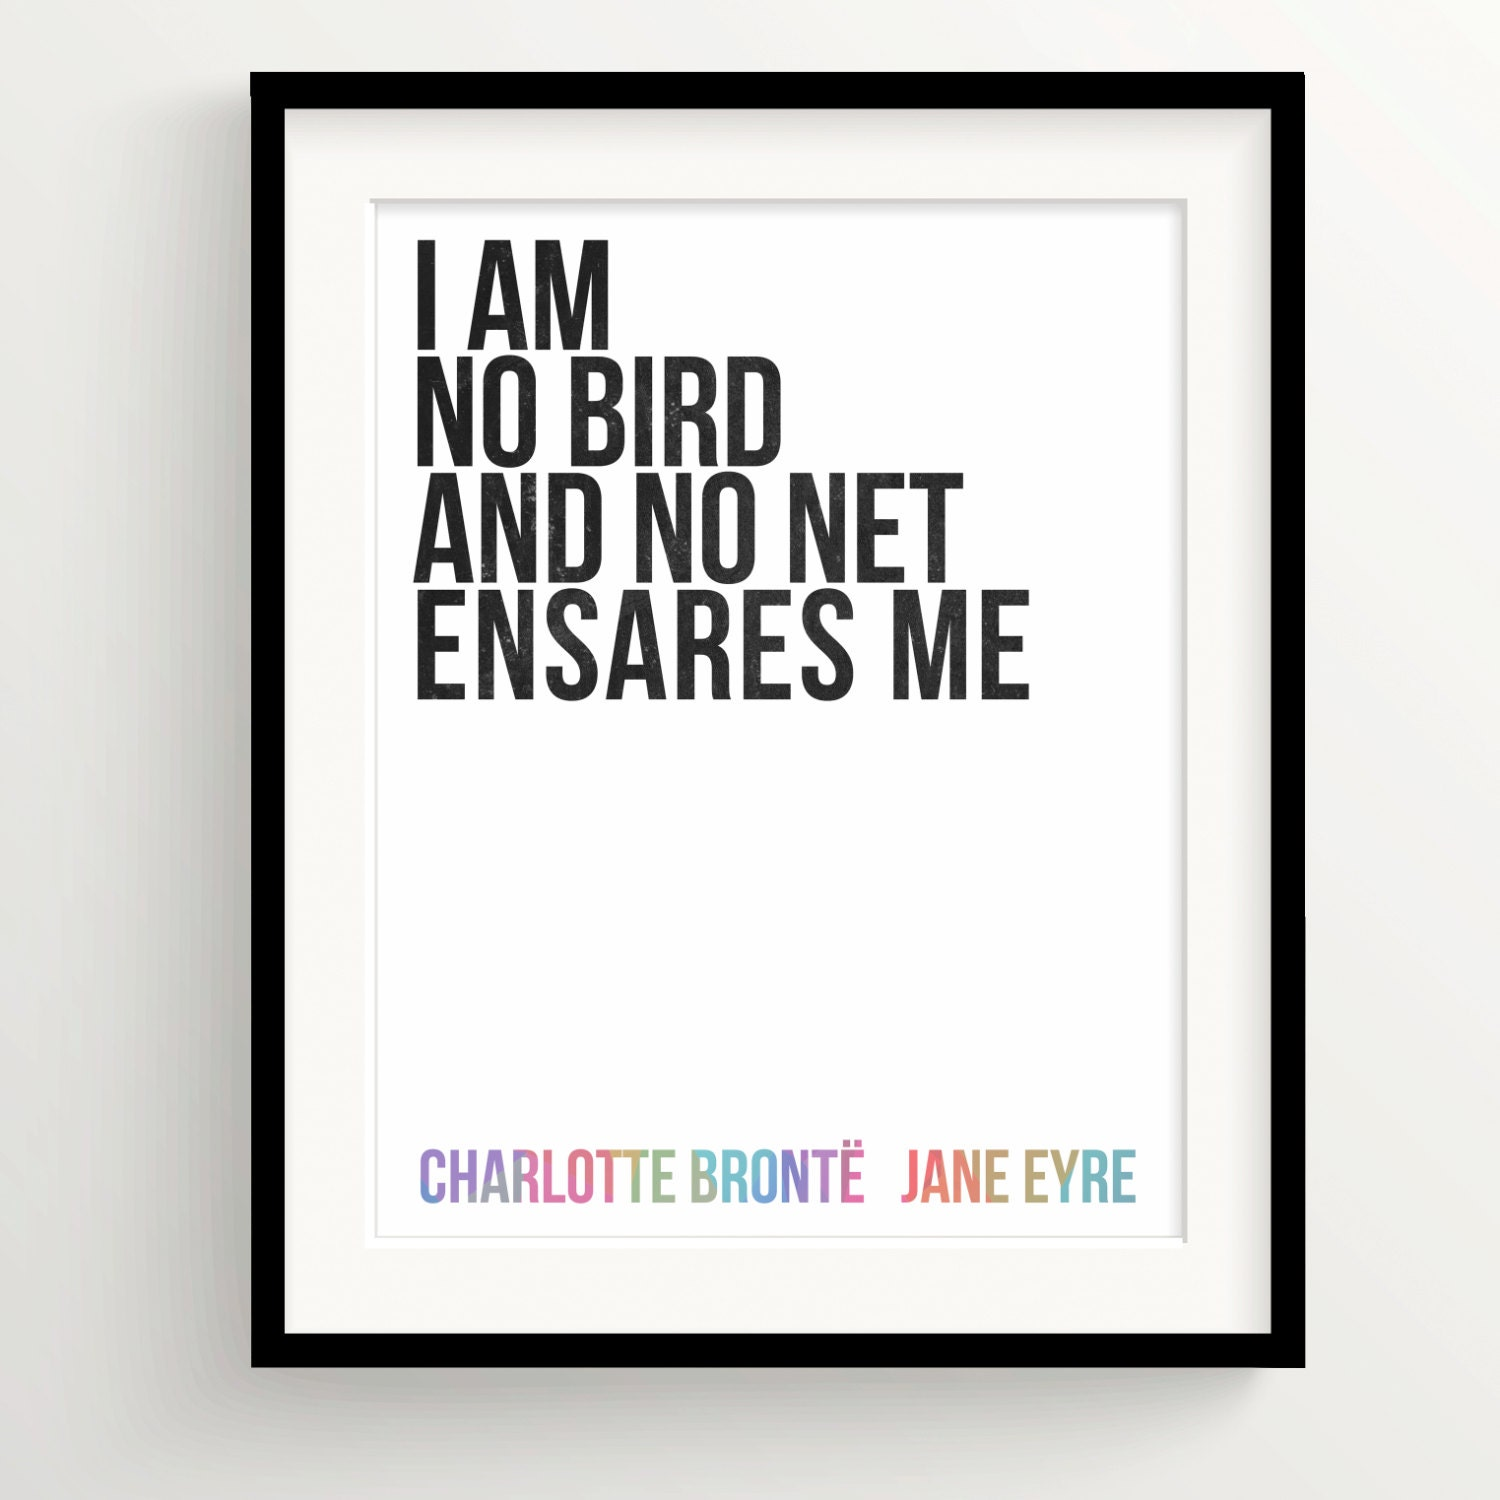 feminism in jane eyre and the In 1966, rb martin stated that jane eyre was the first major feminist novel, although there is not a hint in the book of any desire for political, legal, educational, or even intellectual equality between the sexes.